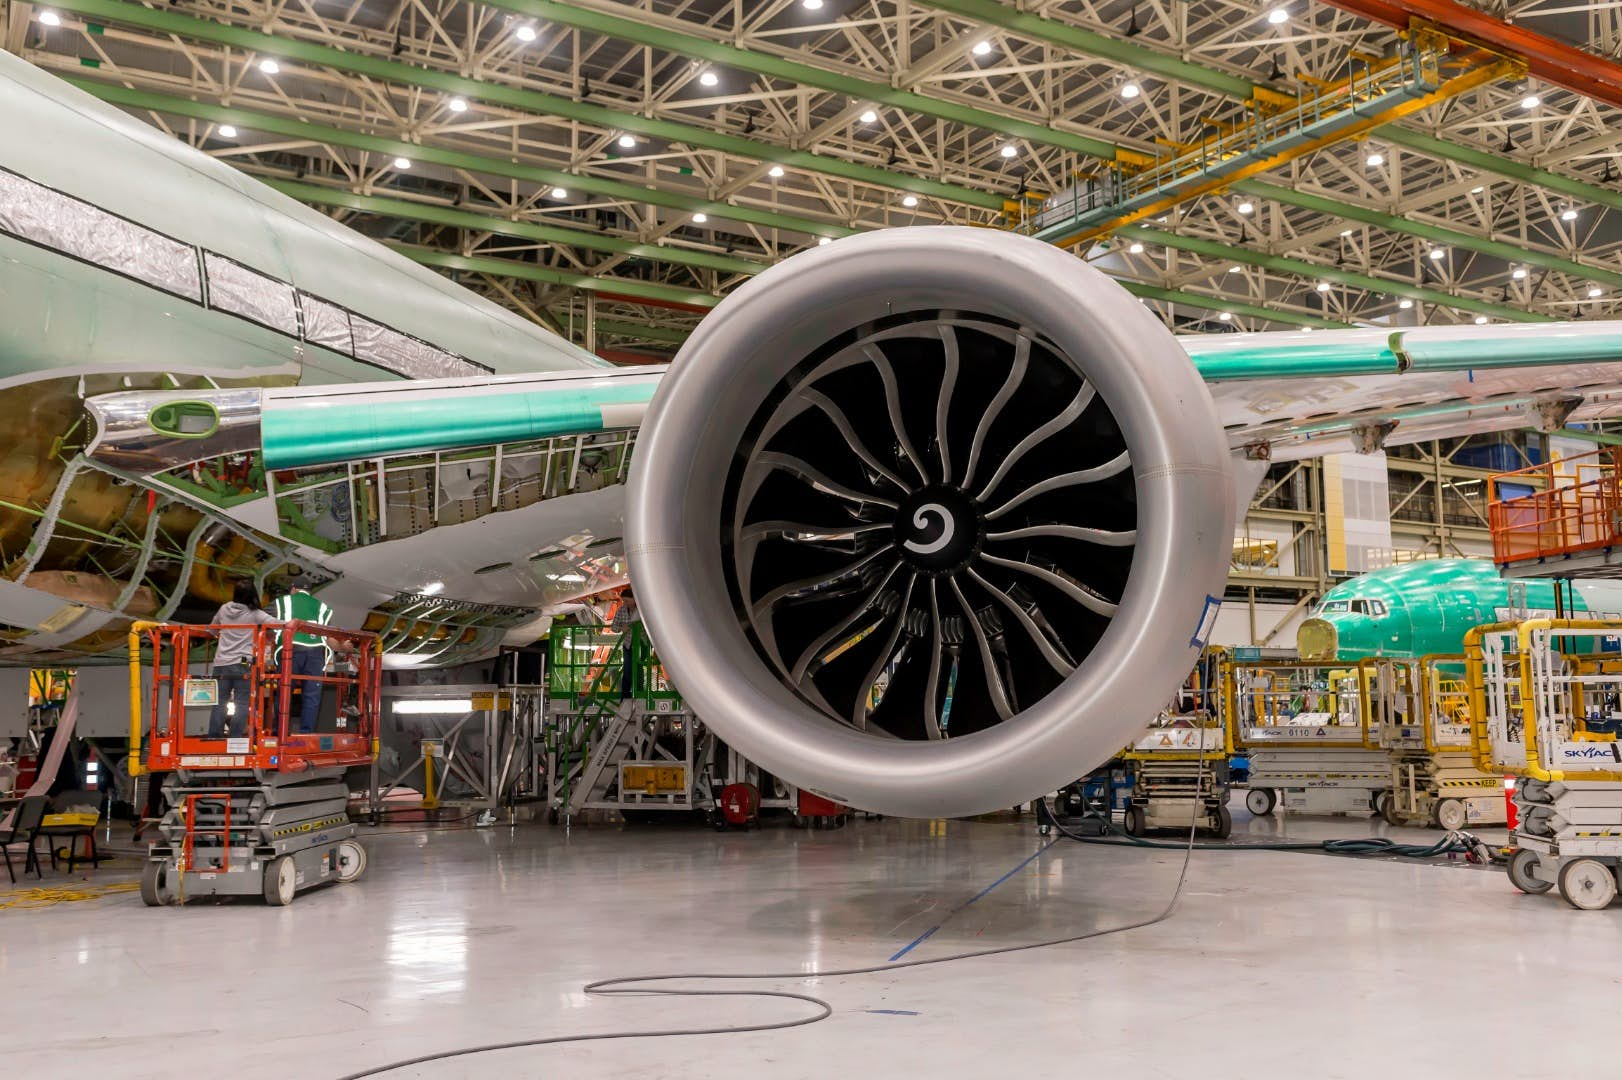 Boeing 777X Features World's Largest Engine, GE9X!